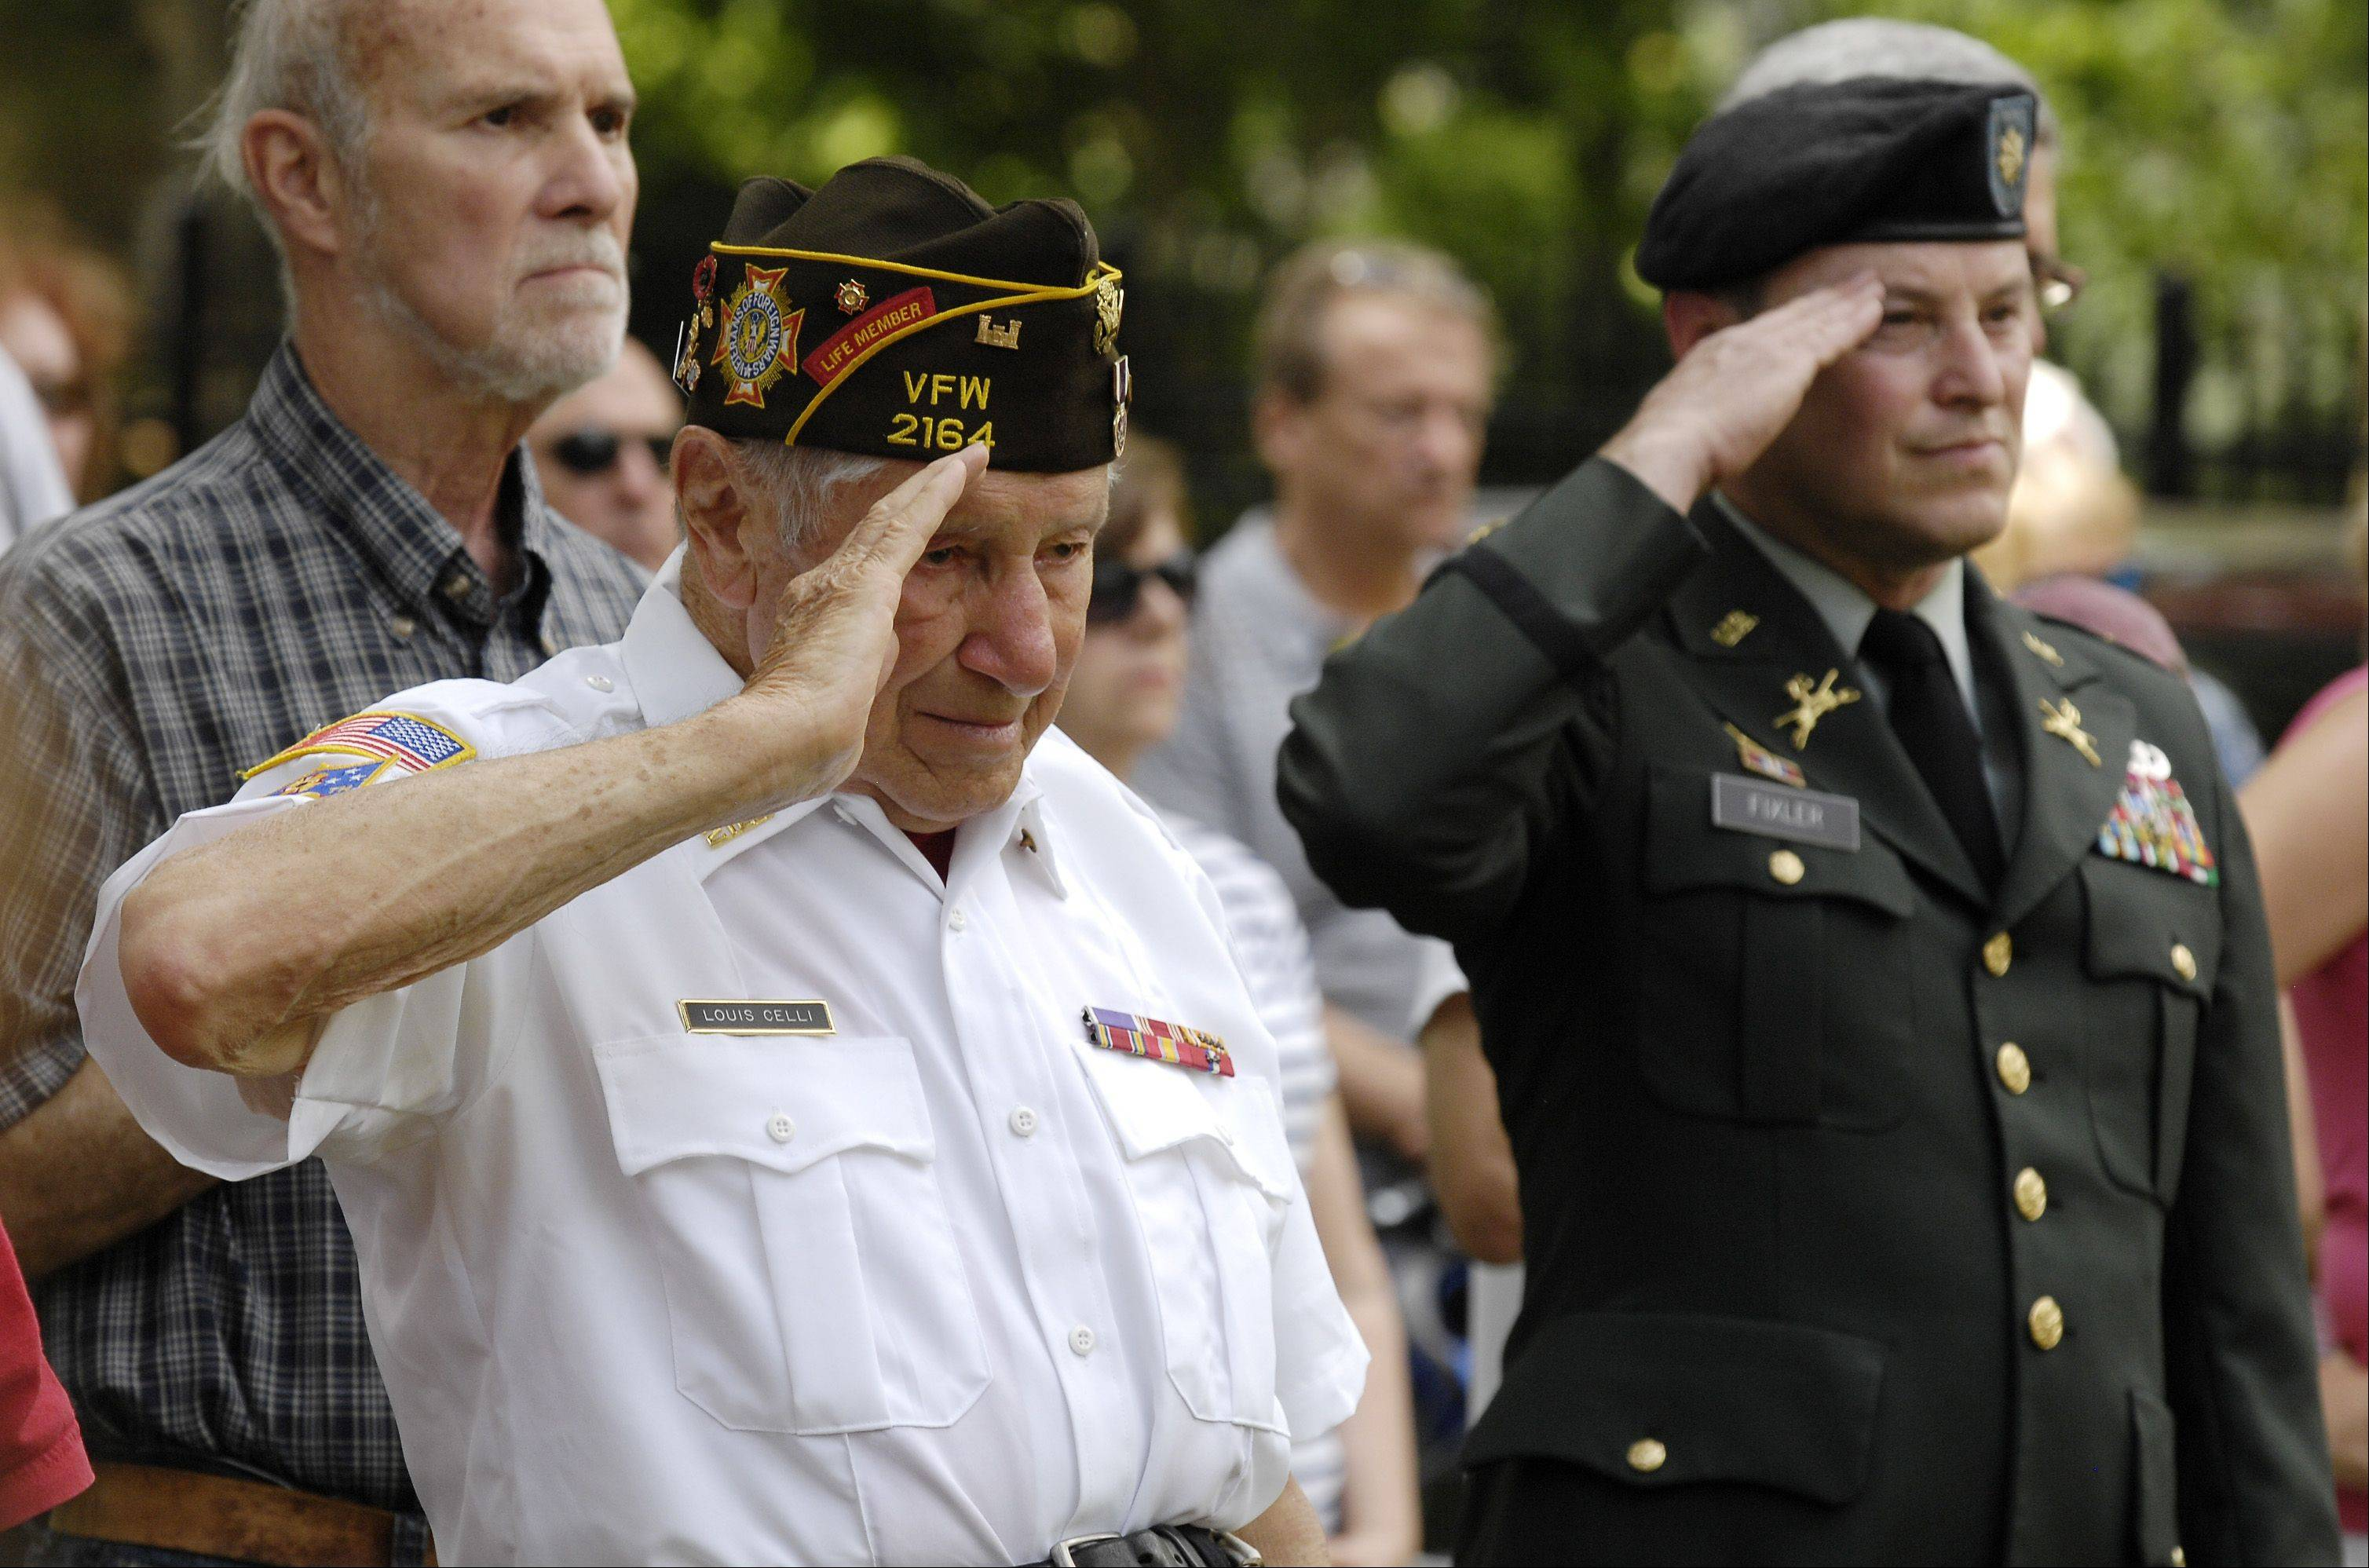 Veterans of Foreign Wars Post 2164 member Louis Celli, a World War II Army veteran, and Retired U.S. Army Major Steve Fixler, salute during the Wheaton Memorial Day ceremony at Wheaton Cemetery Monday.